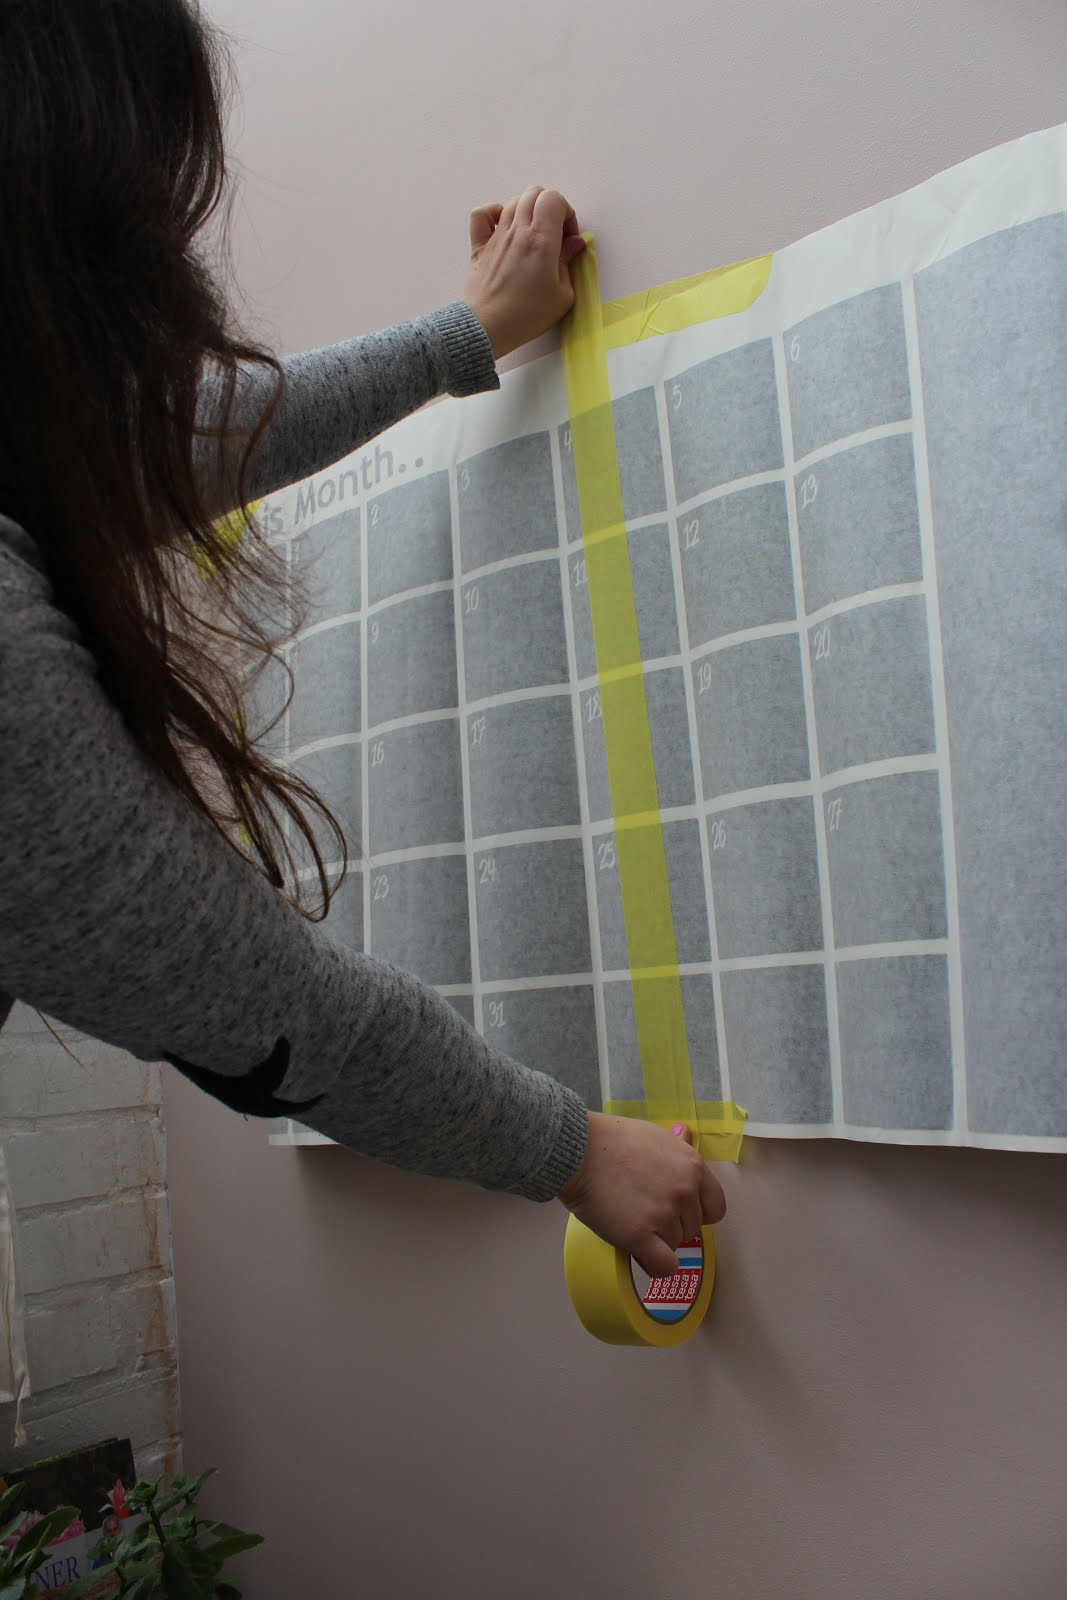 Fitting a Chalkboard calendar to the wall